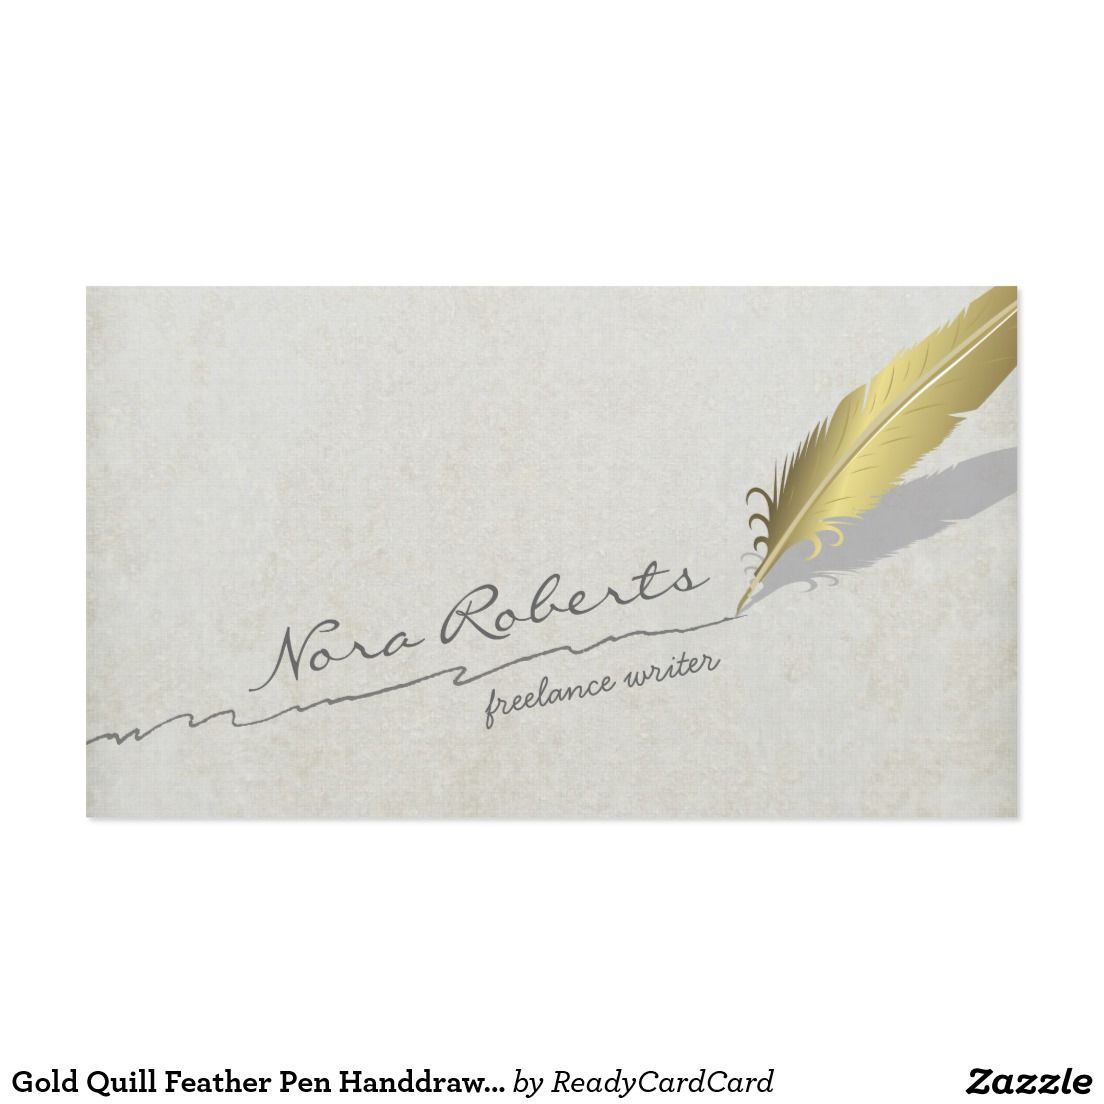 Gold quill feather pen handdrawn line on old paper business card gold quill feather pen handdrawn line on old paper business card magicingreecefo Choice Image